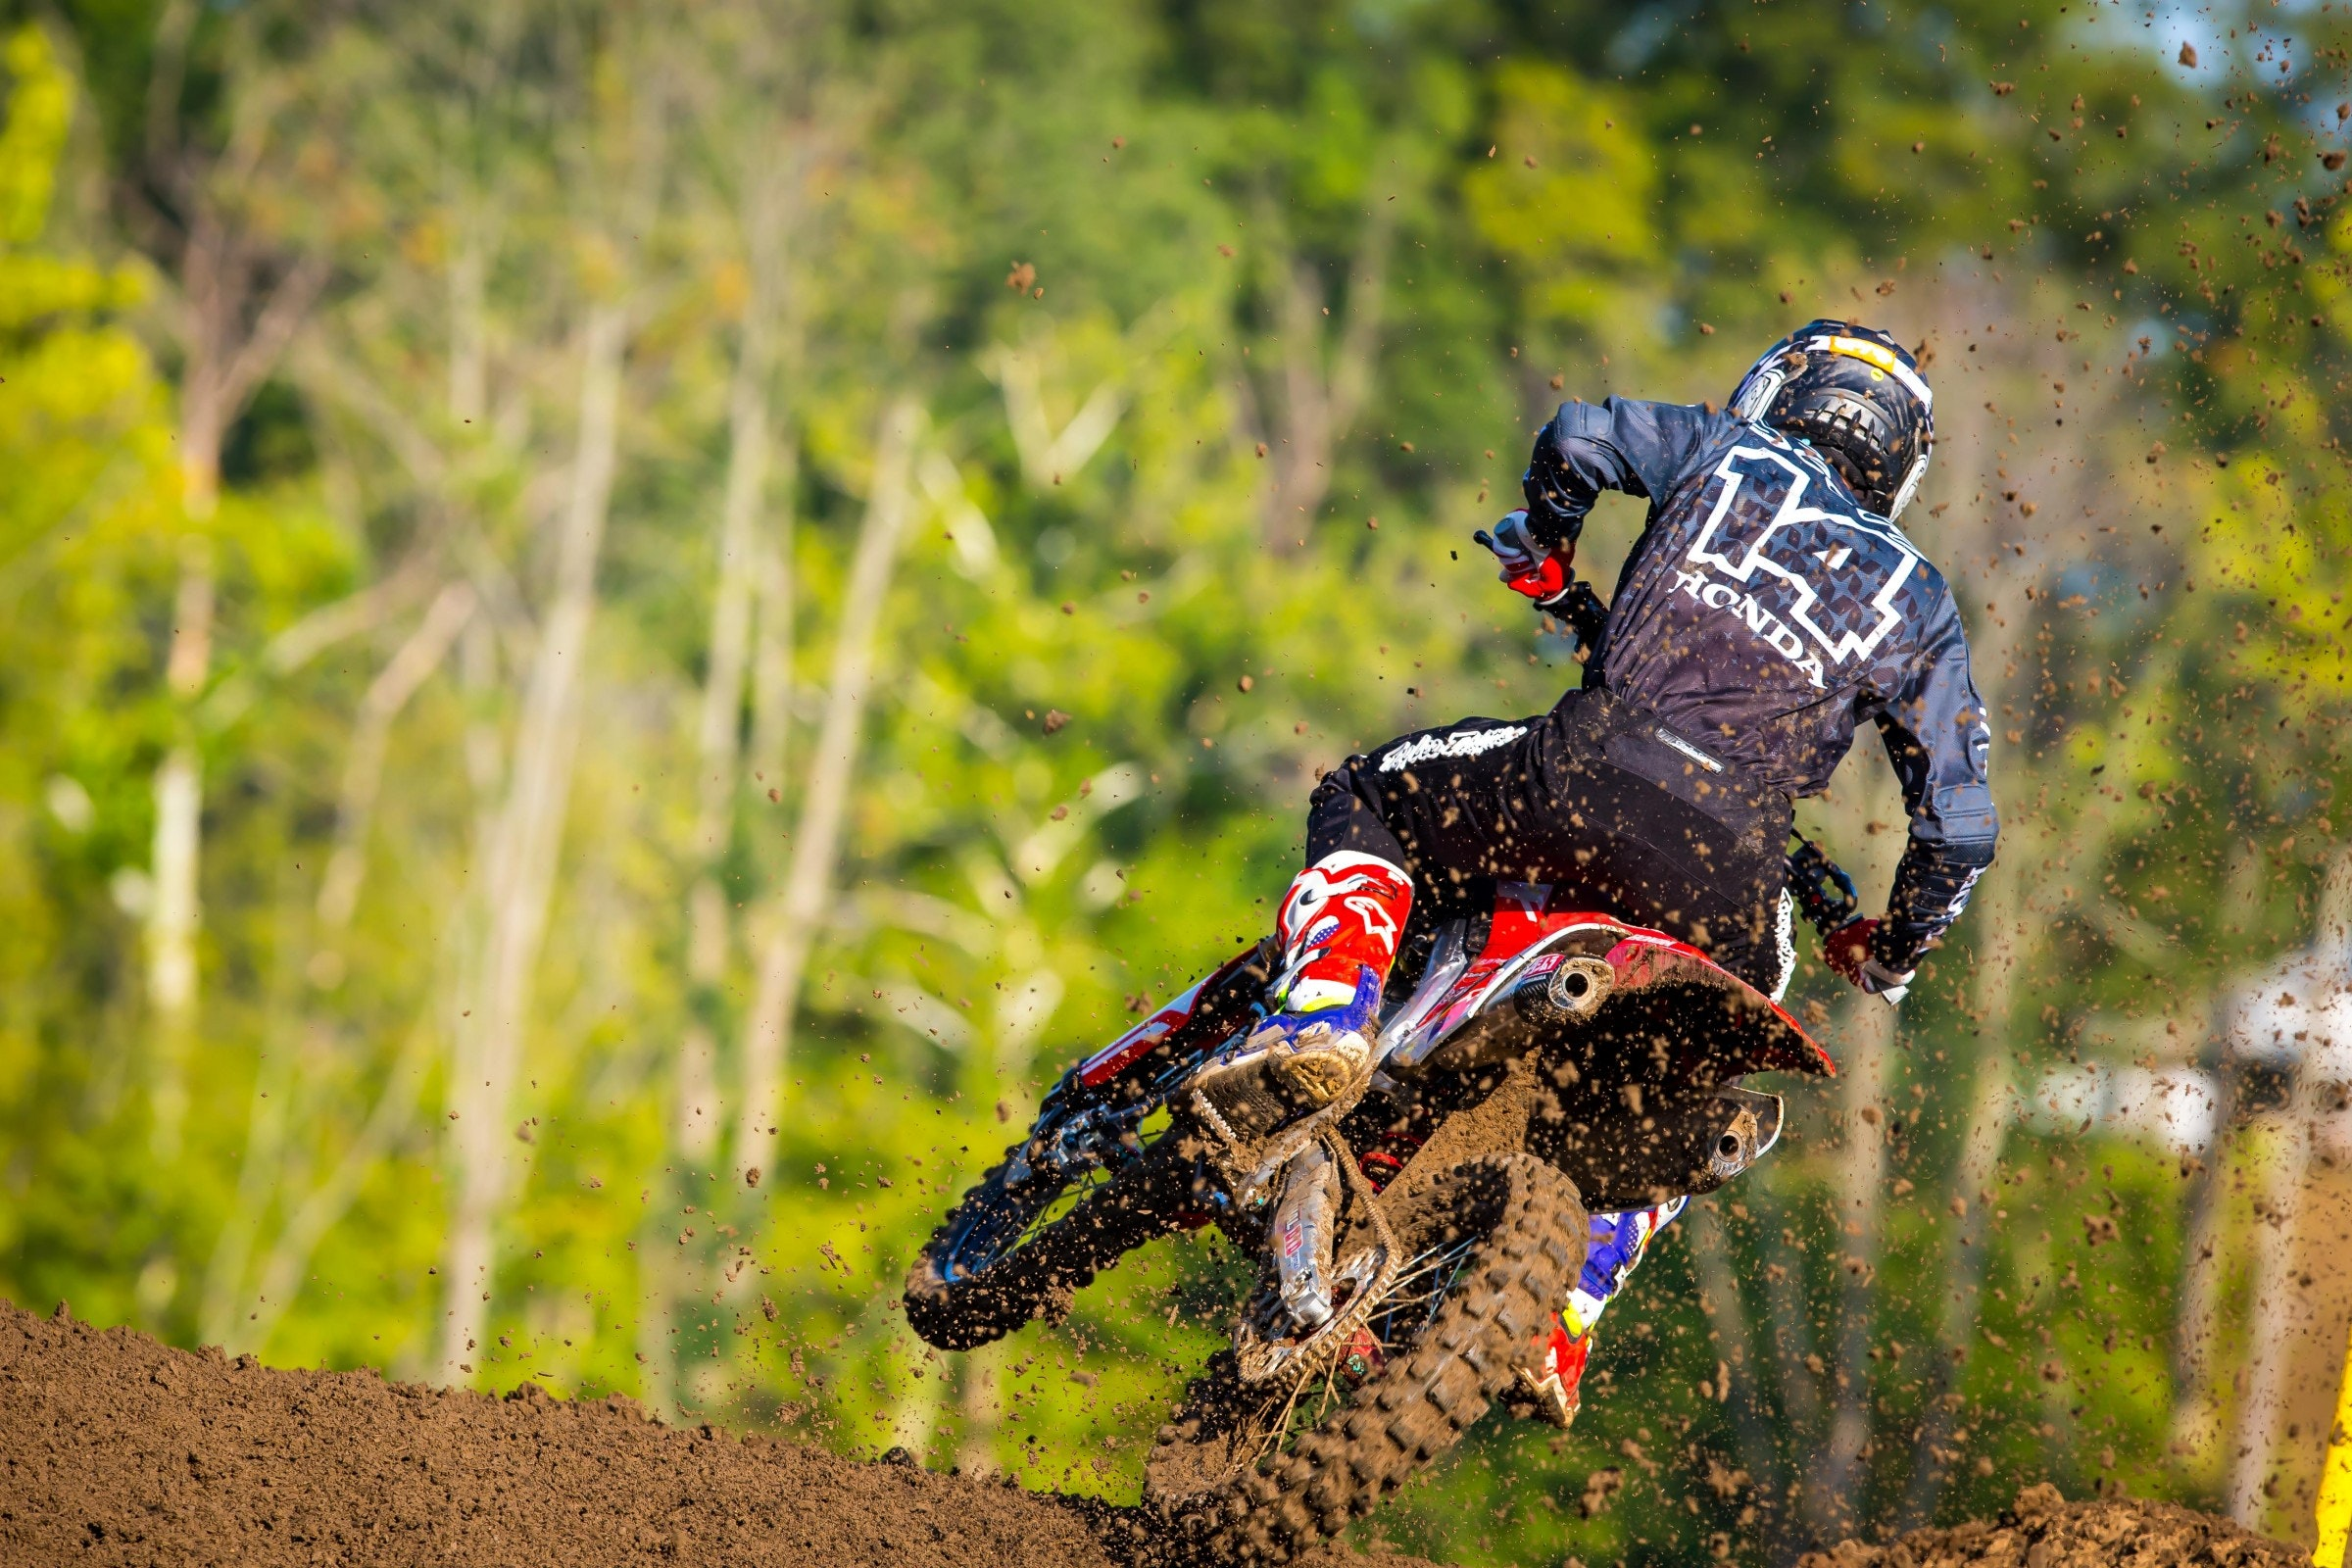 Seely finished fourth overall in his final race before his Team USA debut at the 2017 Motocross of Nations.